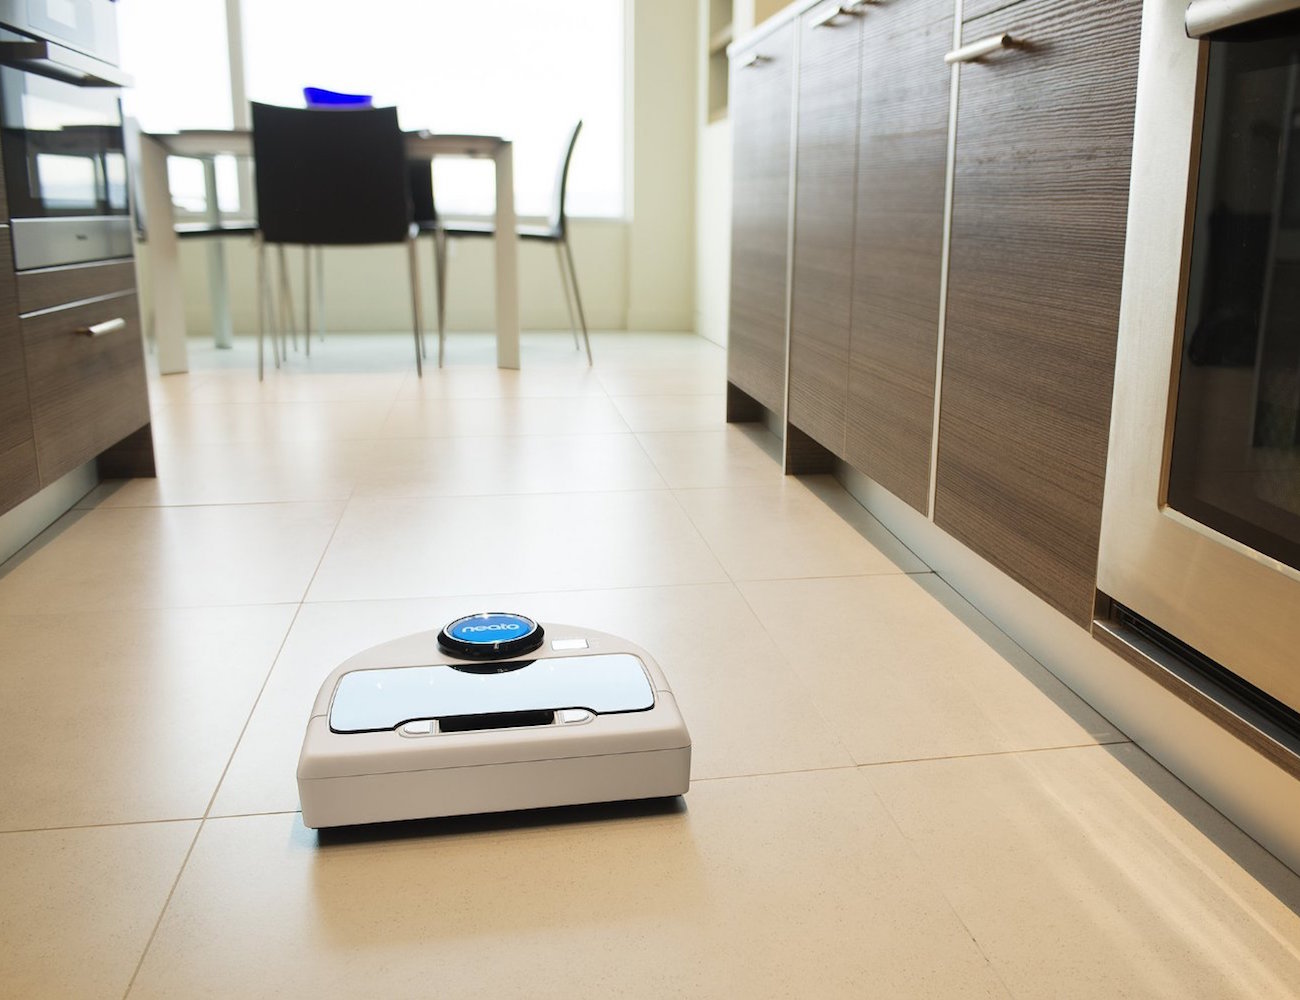 Neato Botvac D Series Robot Vacuum Cleaner ...